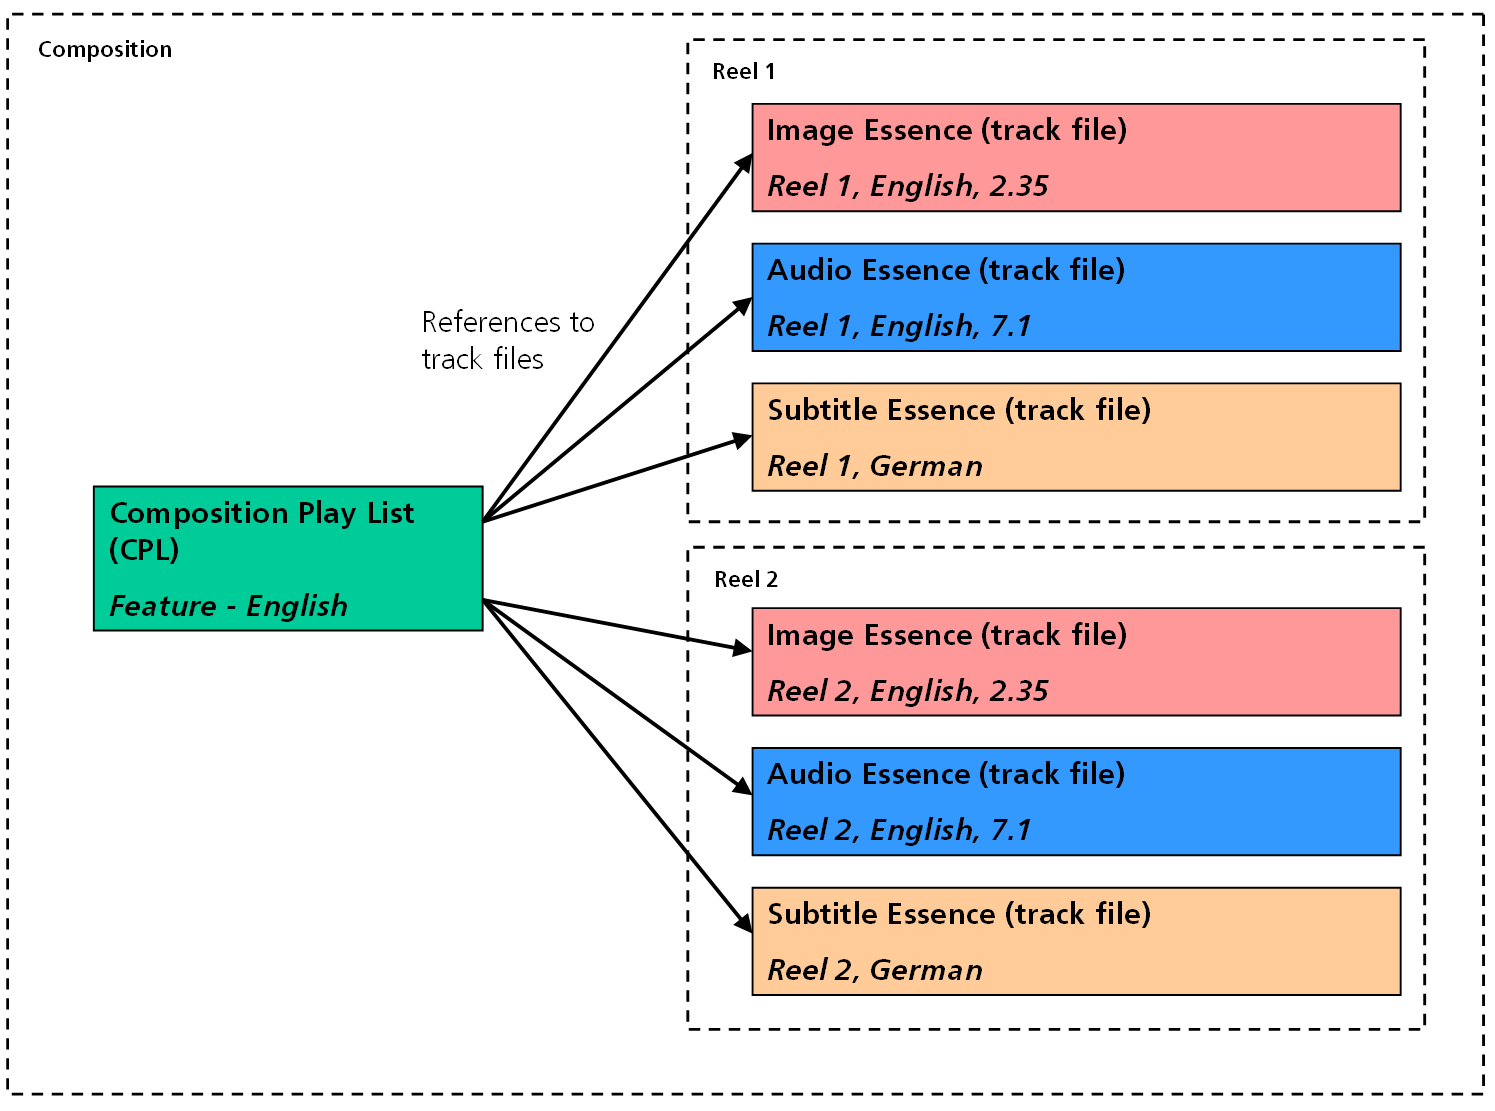 multi volume set of storage media. In that case the VolumeIndex 16 identify each volume. shall be used to Figure 3- Relation between CPL and track files 3.